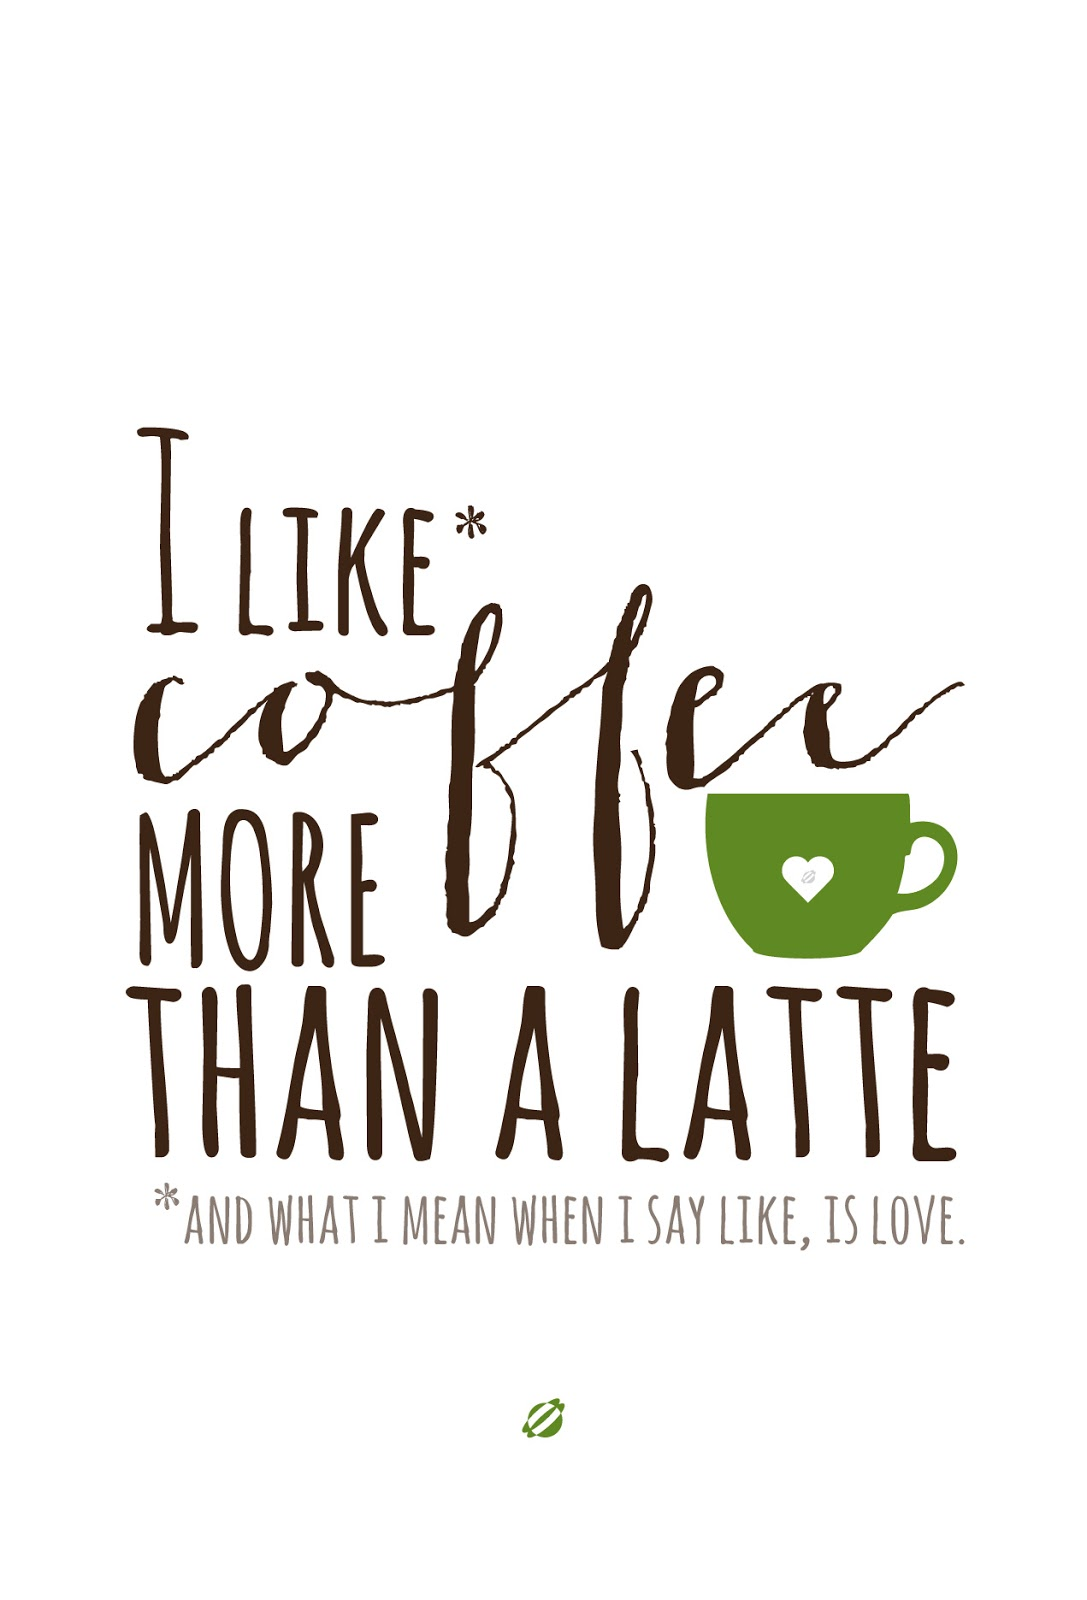 LostBumblebee ©2014 I Like Coffee MORE than a Latte - Free PRINTABLE- Personal use Only.